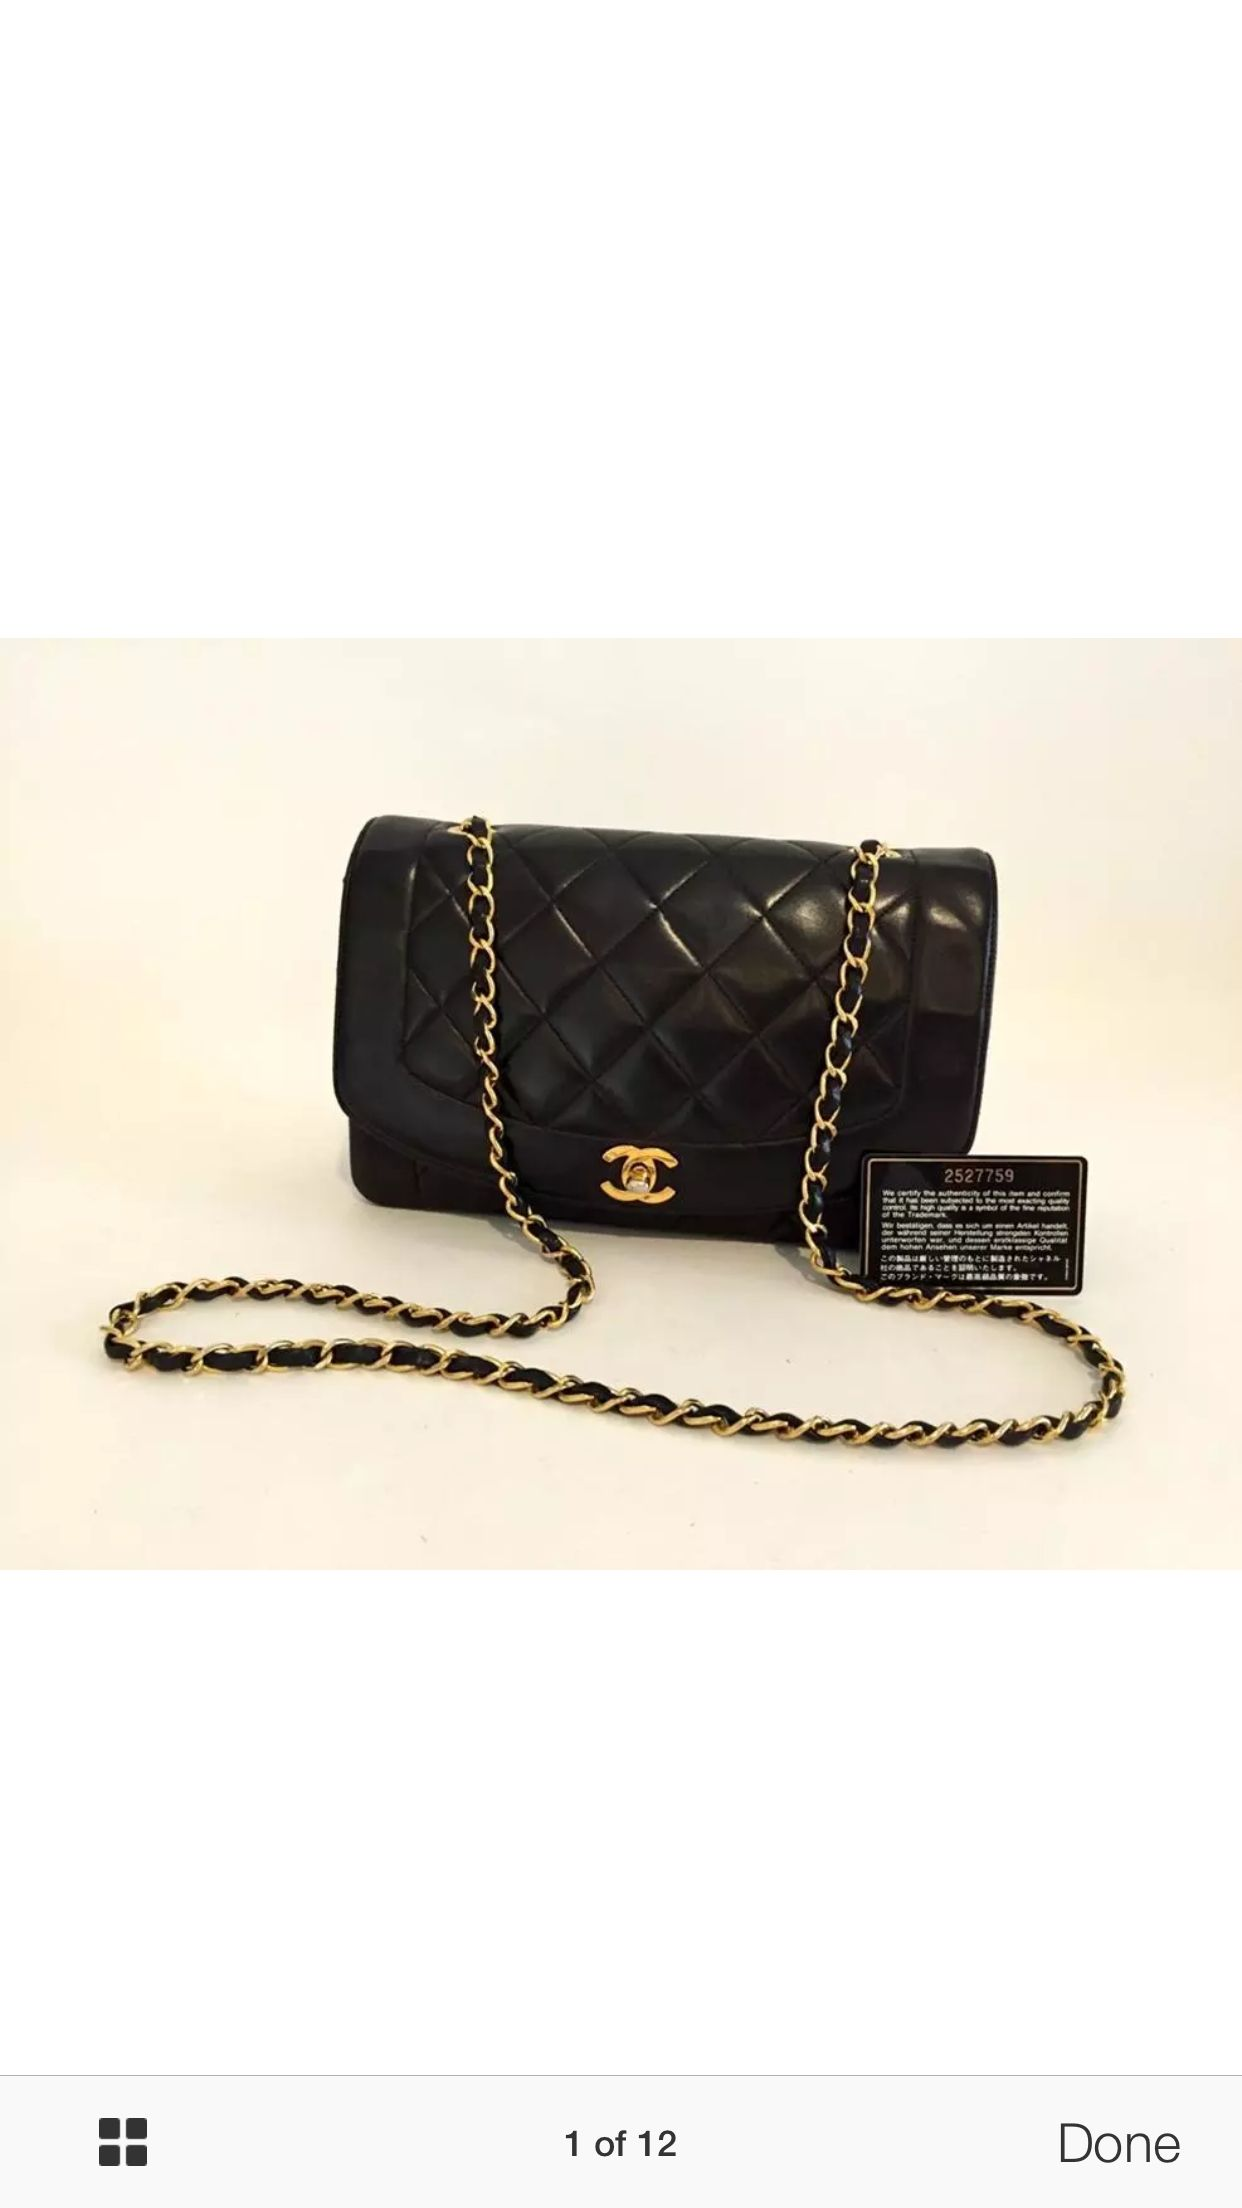 9241d9f4caf7 Authentic Chanel Classic single flap bag known as the